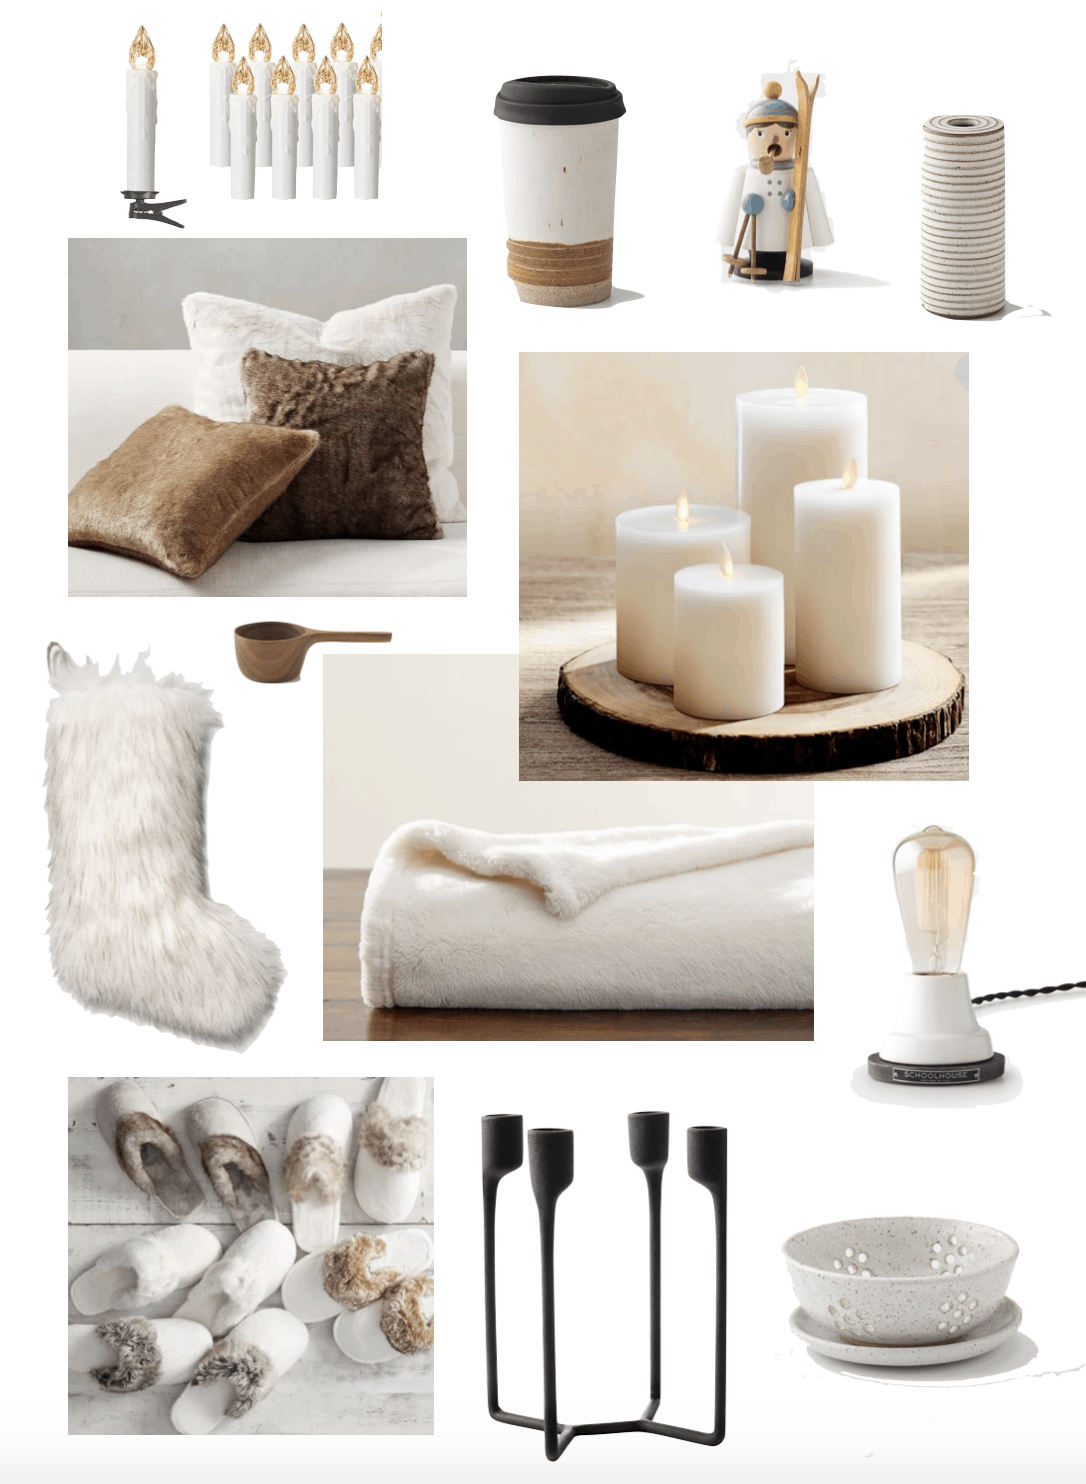 pillows, candles, stocking, coffee scoop, lamp